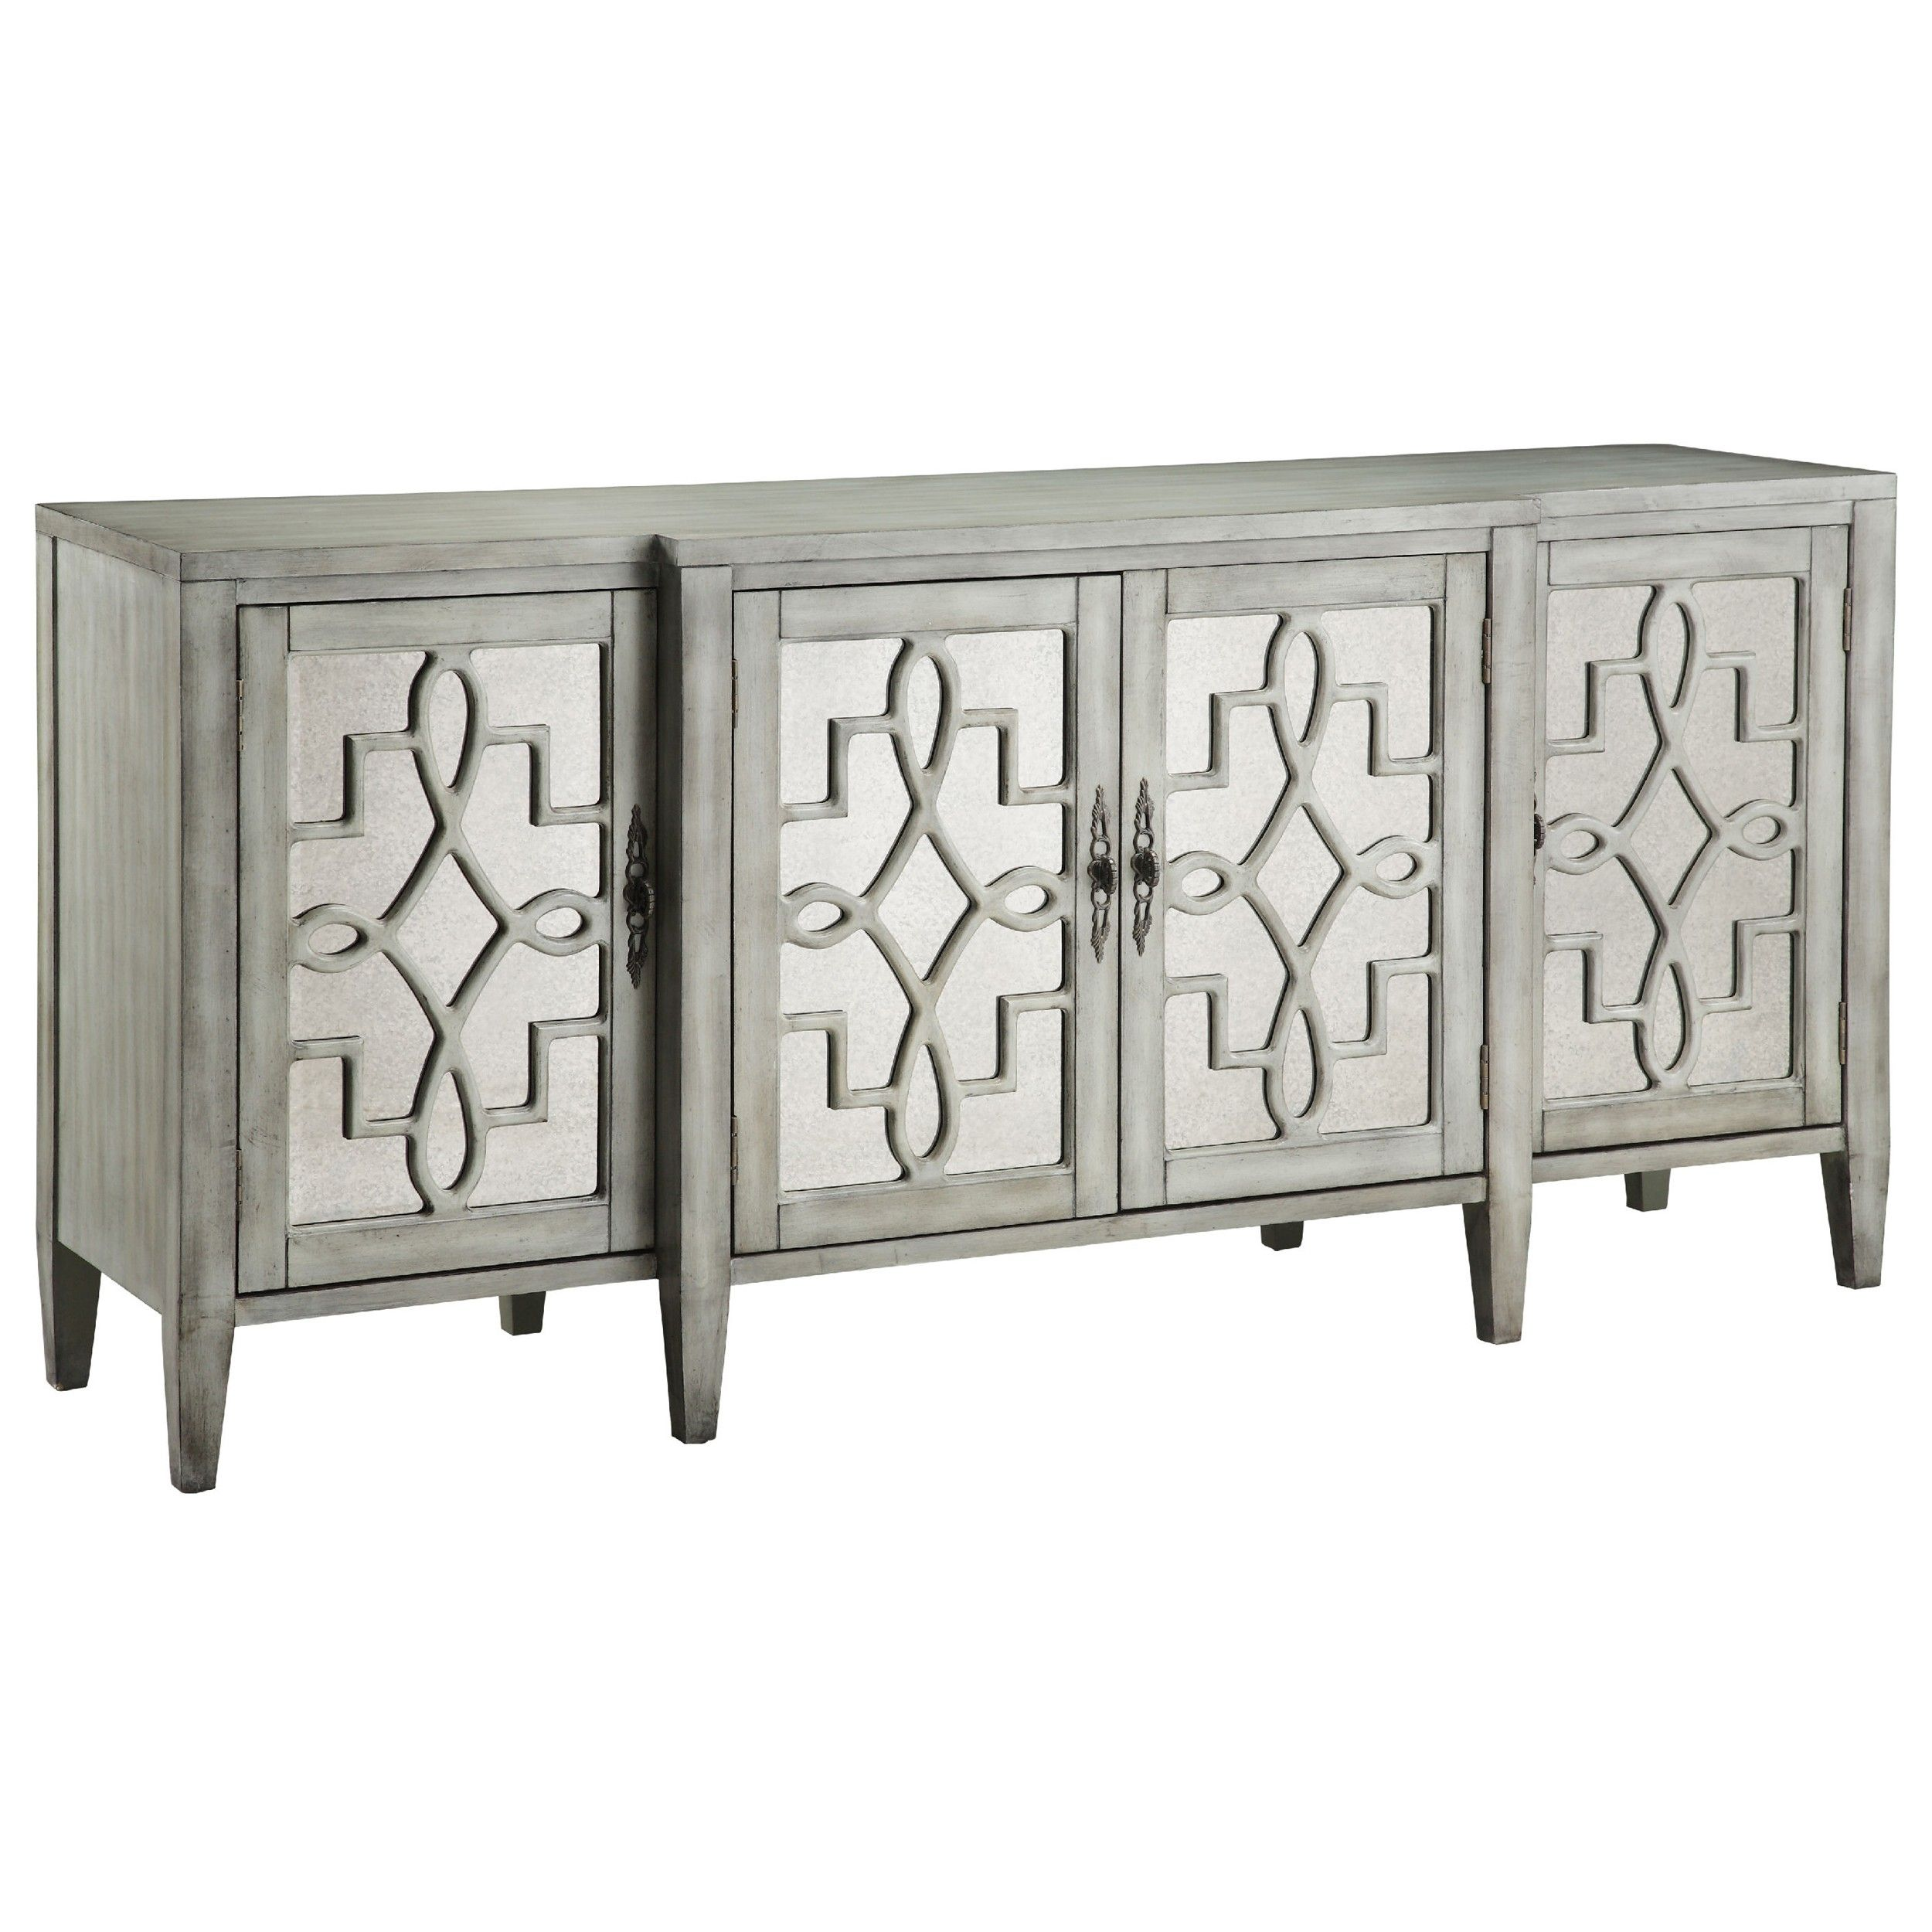 Antique Collection Mirrored Credenza Breakfront mirrored four-door credenza  features antique mirrored glass set behind intricate open scroll fretwork.